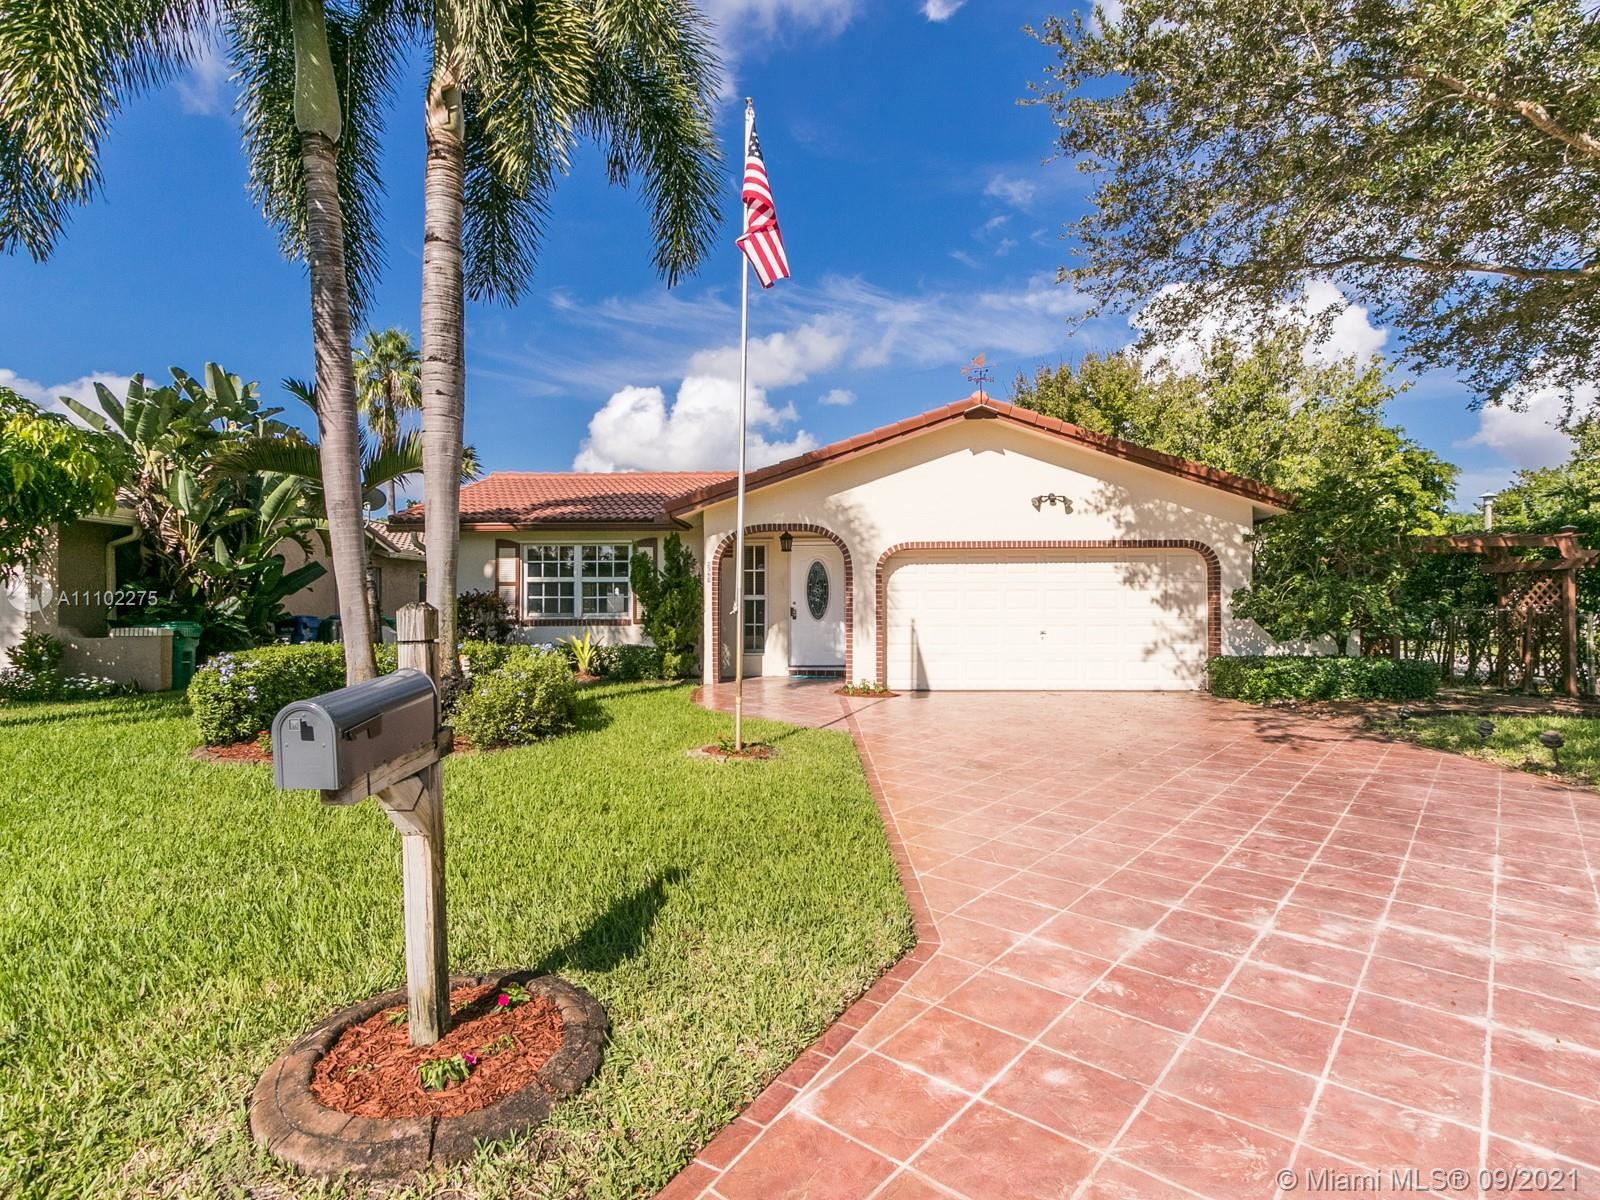 2348 NW 98th Way, Coral Springs, FL 33065 - #: A11102275